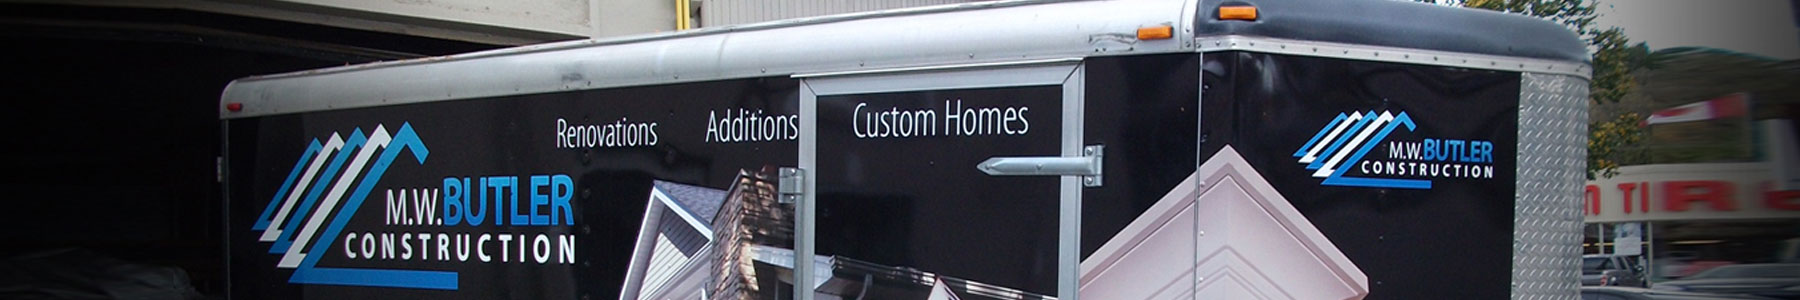 About Us - Regional Signs Inc. LED Billboards LED Signs Indor Digital Signs Channel Letter Pylon Signs Canopy Signs Wayfinding Signs Fascia Signs & About Us - Regional Signs Inc. LED Billboards LED Signs Indor ...